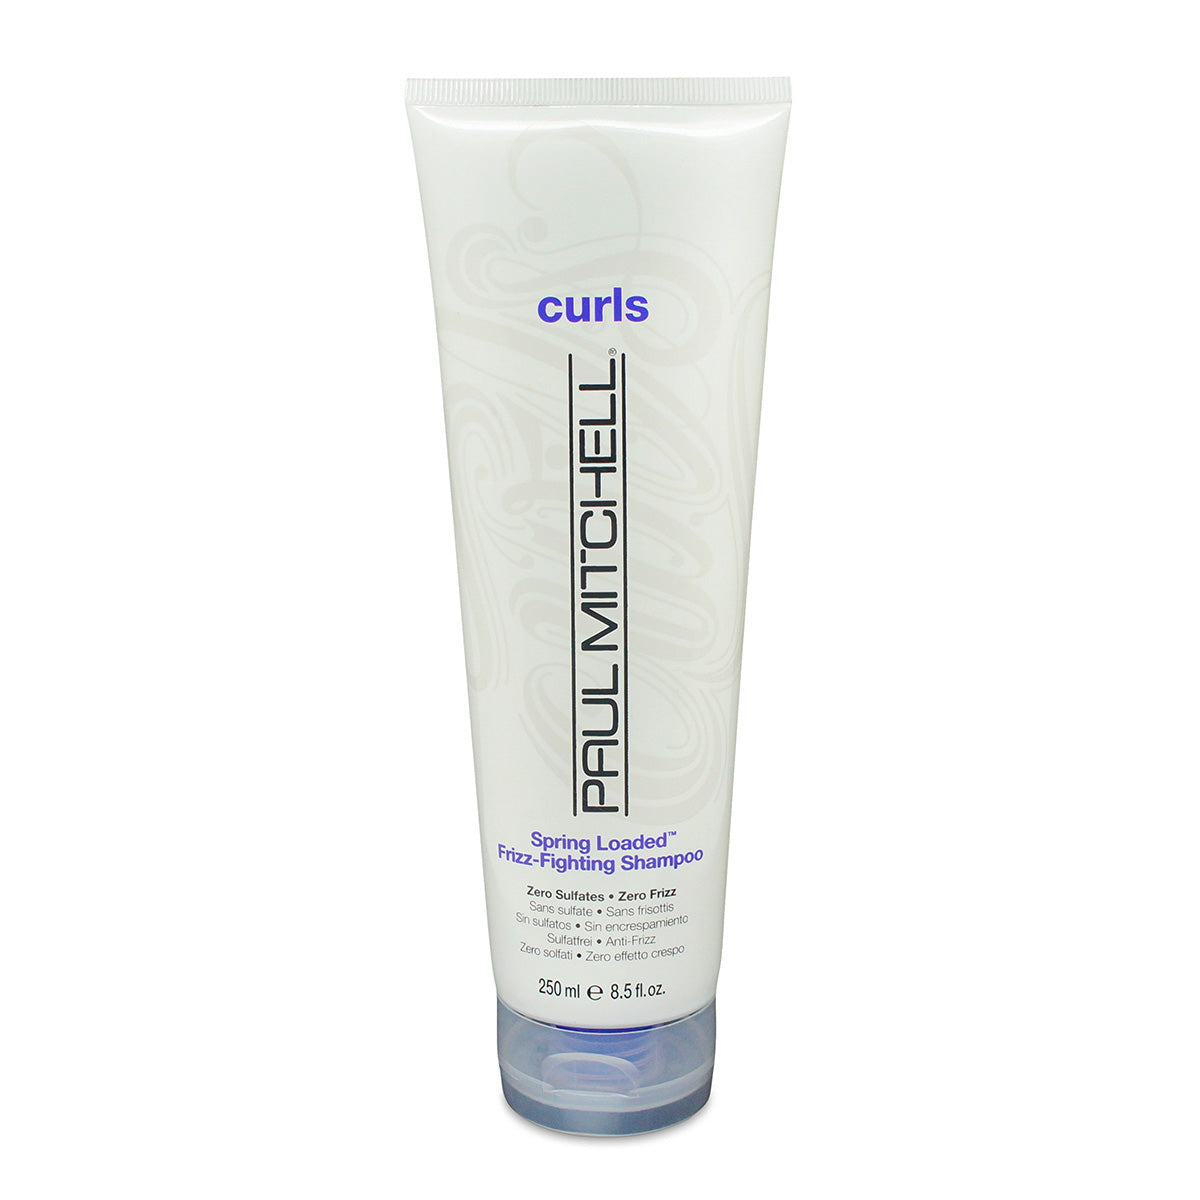 Paul Mitchell Paul Mitchell Curls Spring Loaded Frizz